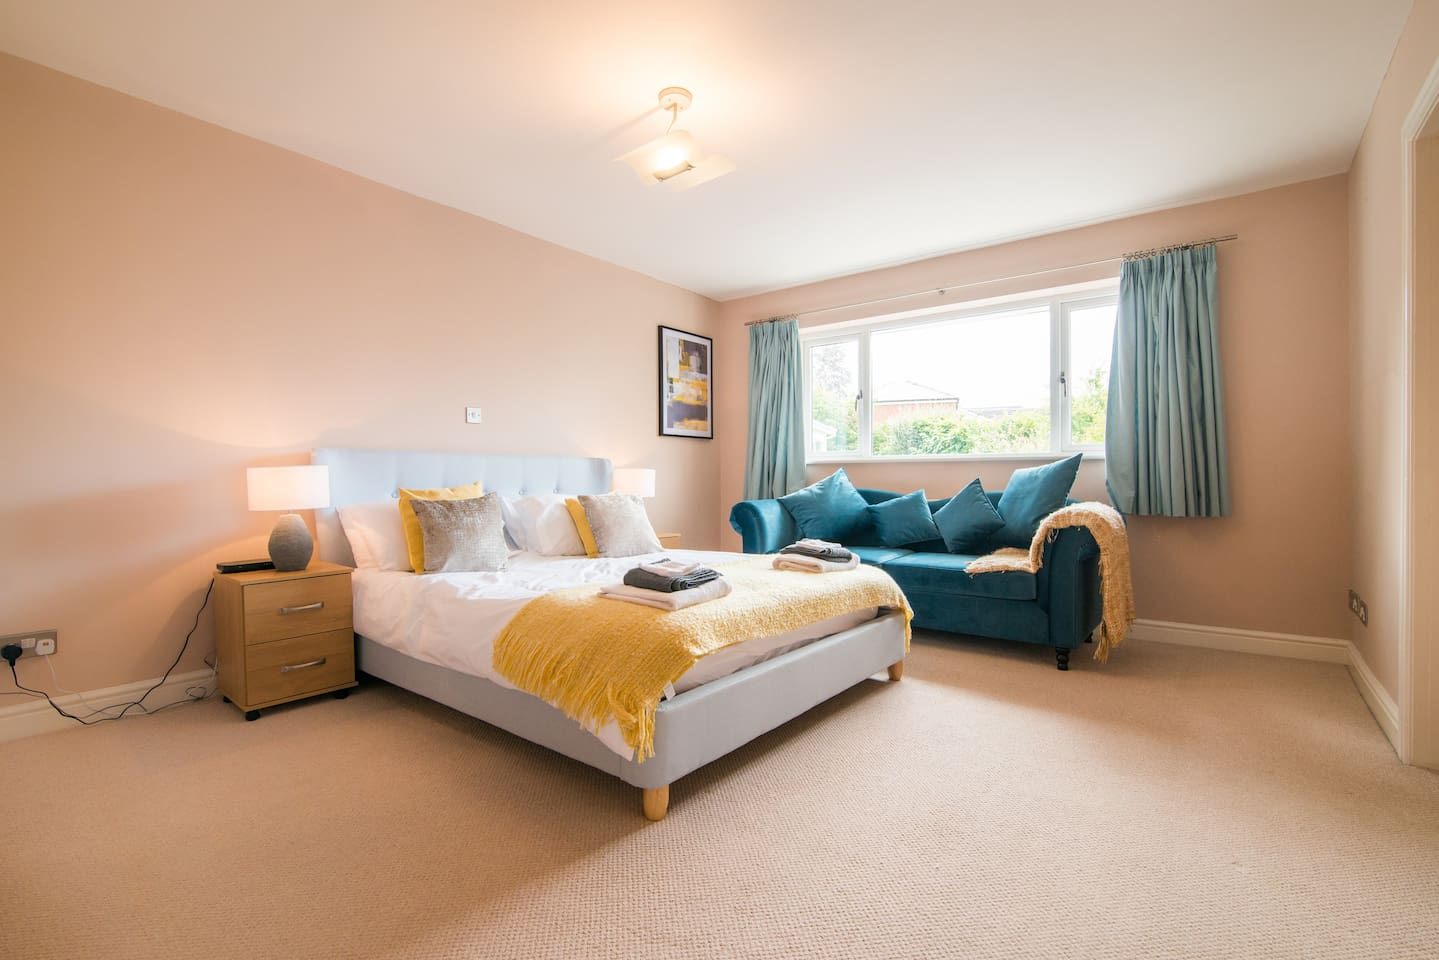 First floor bedroom One with king size bed and full ensuite with bath